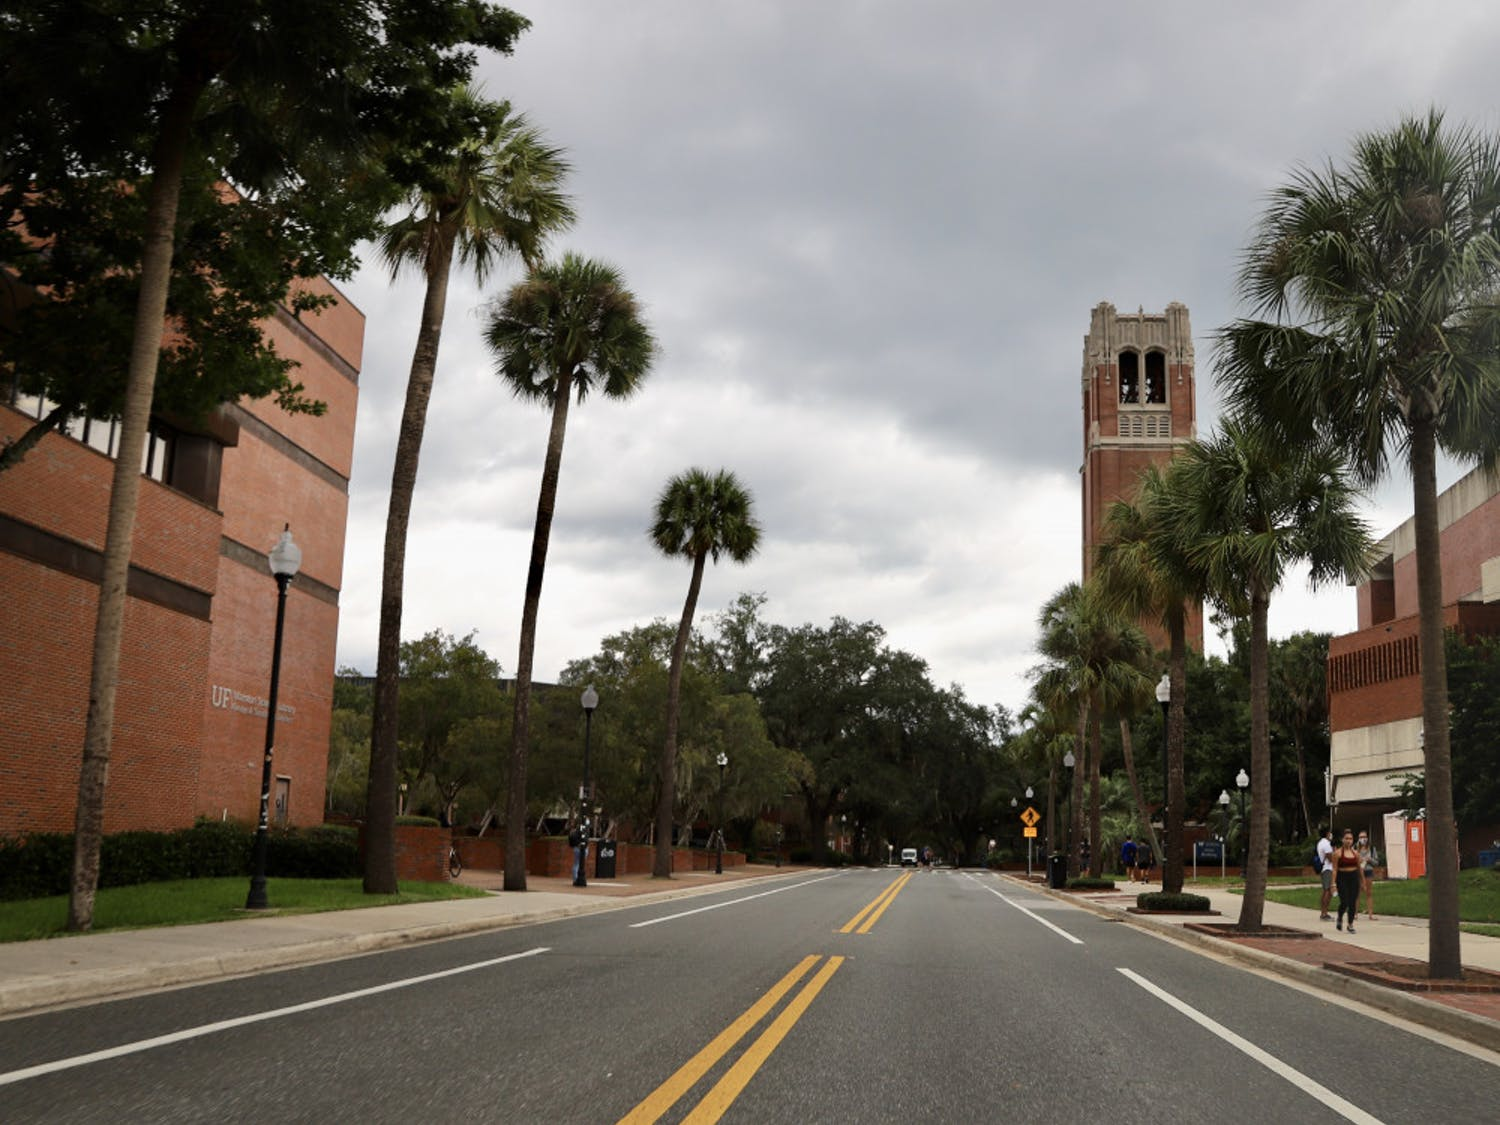 Photo of Newell Drive with Century Tower and Marston Science Library visible in the view